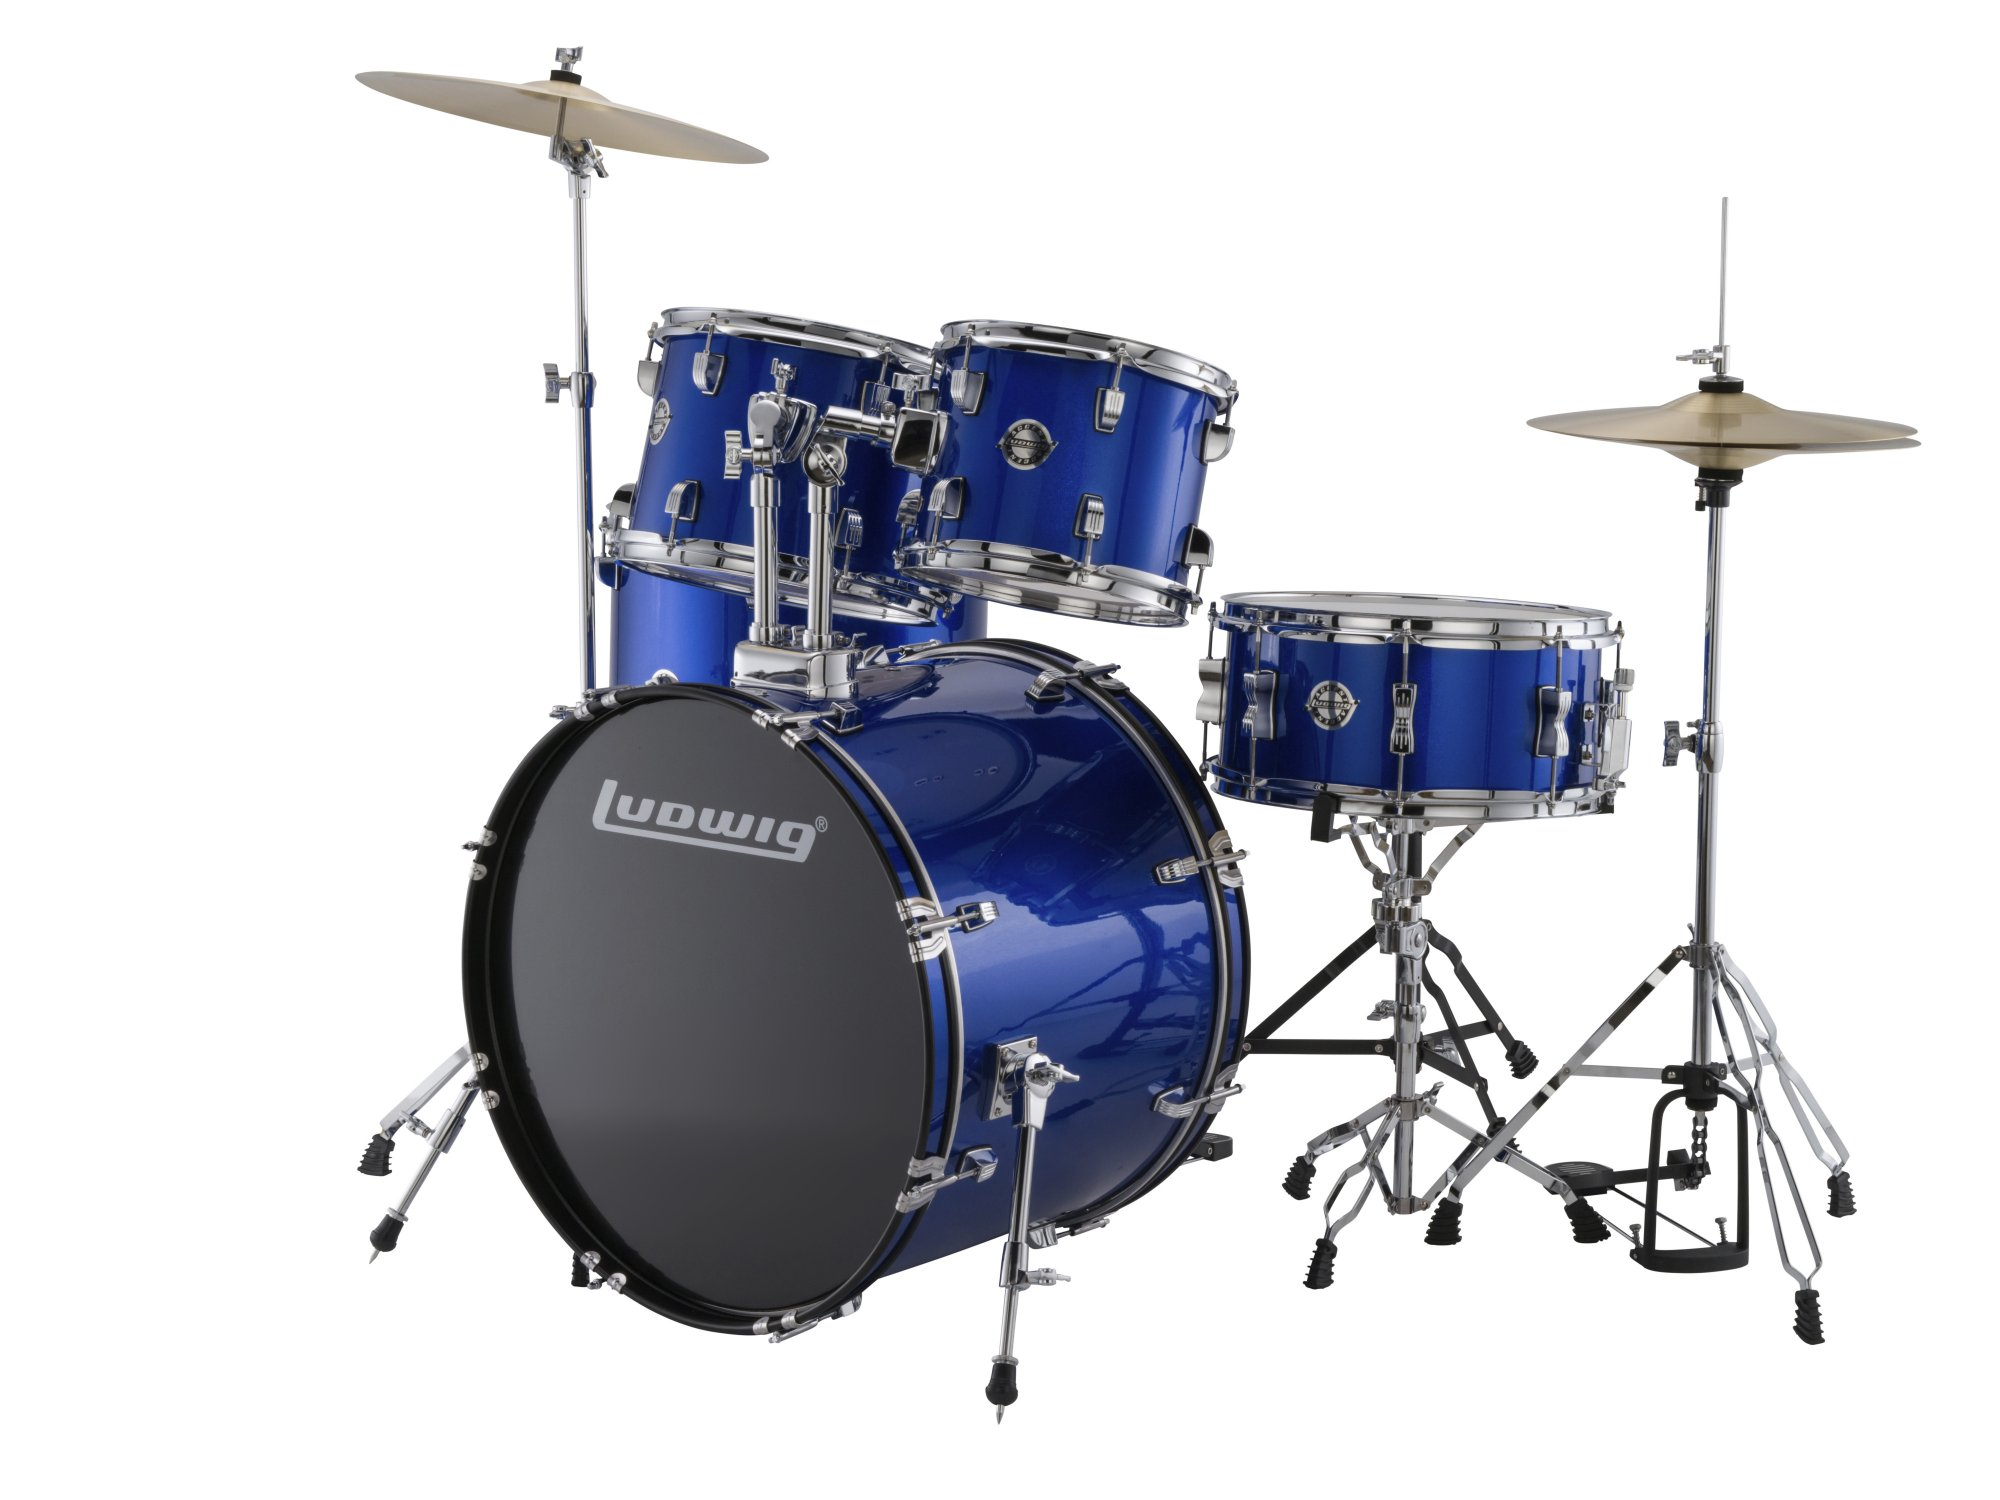 Ludwig LC17019 Accent Fuse 5-Piece Drum Kit w/ Hardware, Cymbals, & Throne - Blue Foil